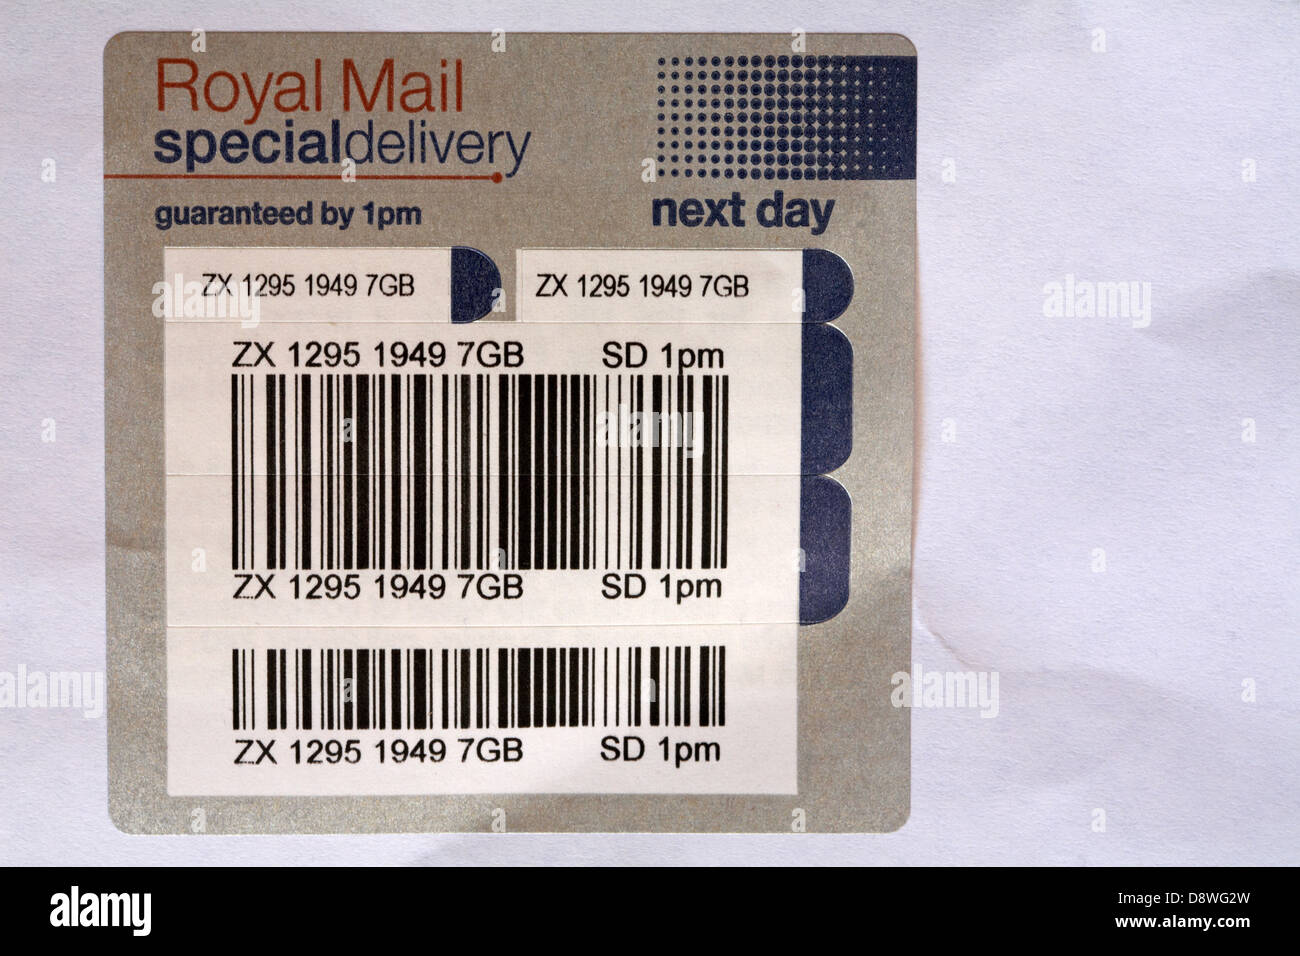 Royal Mail Special Delivery sticker on envelope - Stock Image